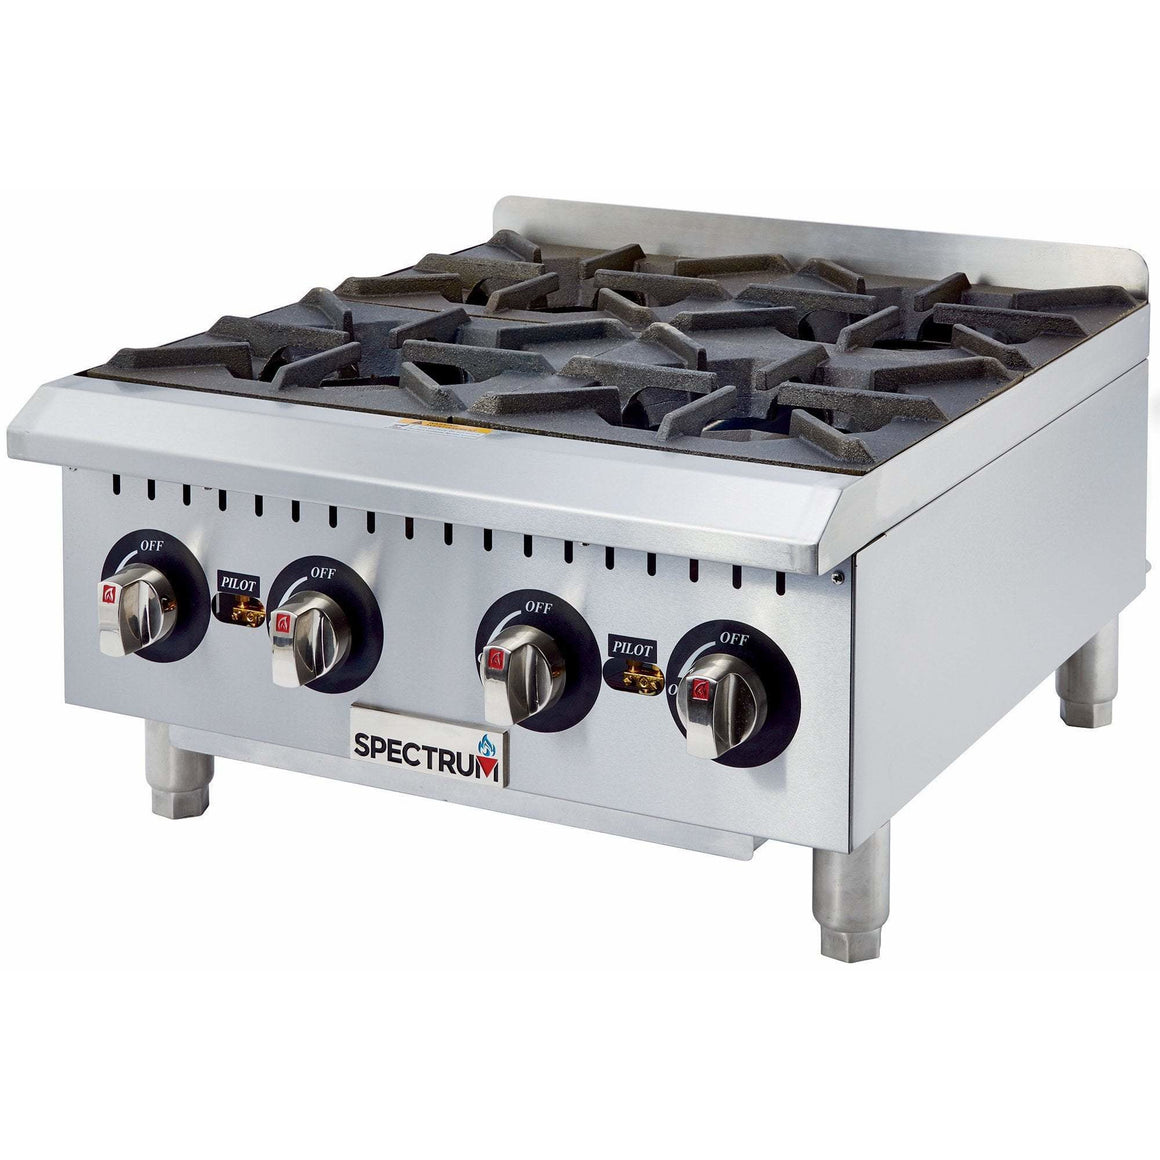 Winco - GHP-4 - Spectrum Gas 4 Open Burner Hot Plate, Manual  + 1 Set Conversion Kit - Countertop